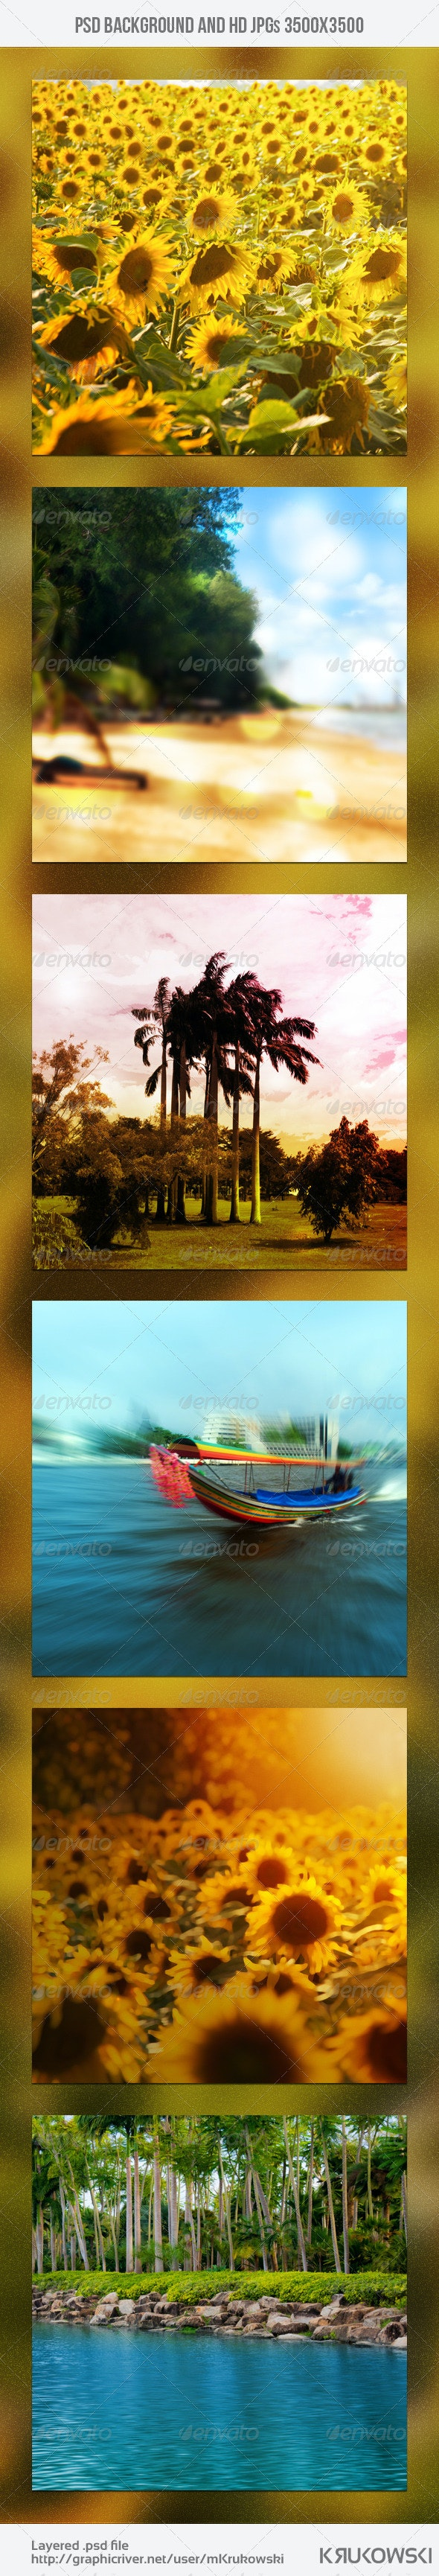 Vacation Background - Nature Backgrounds